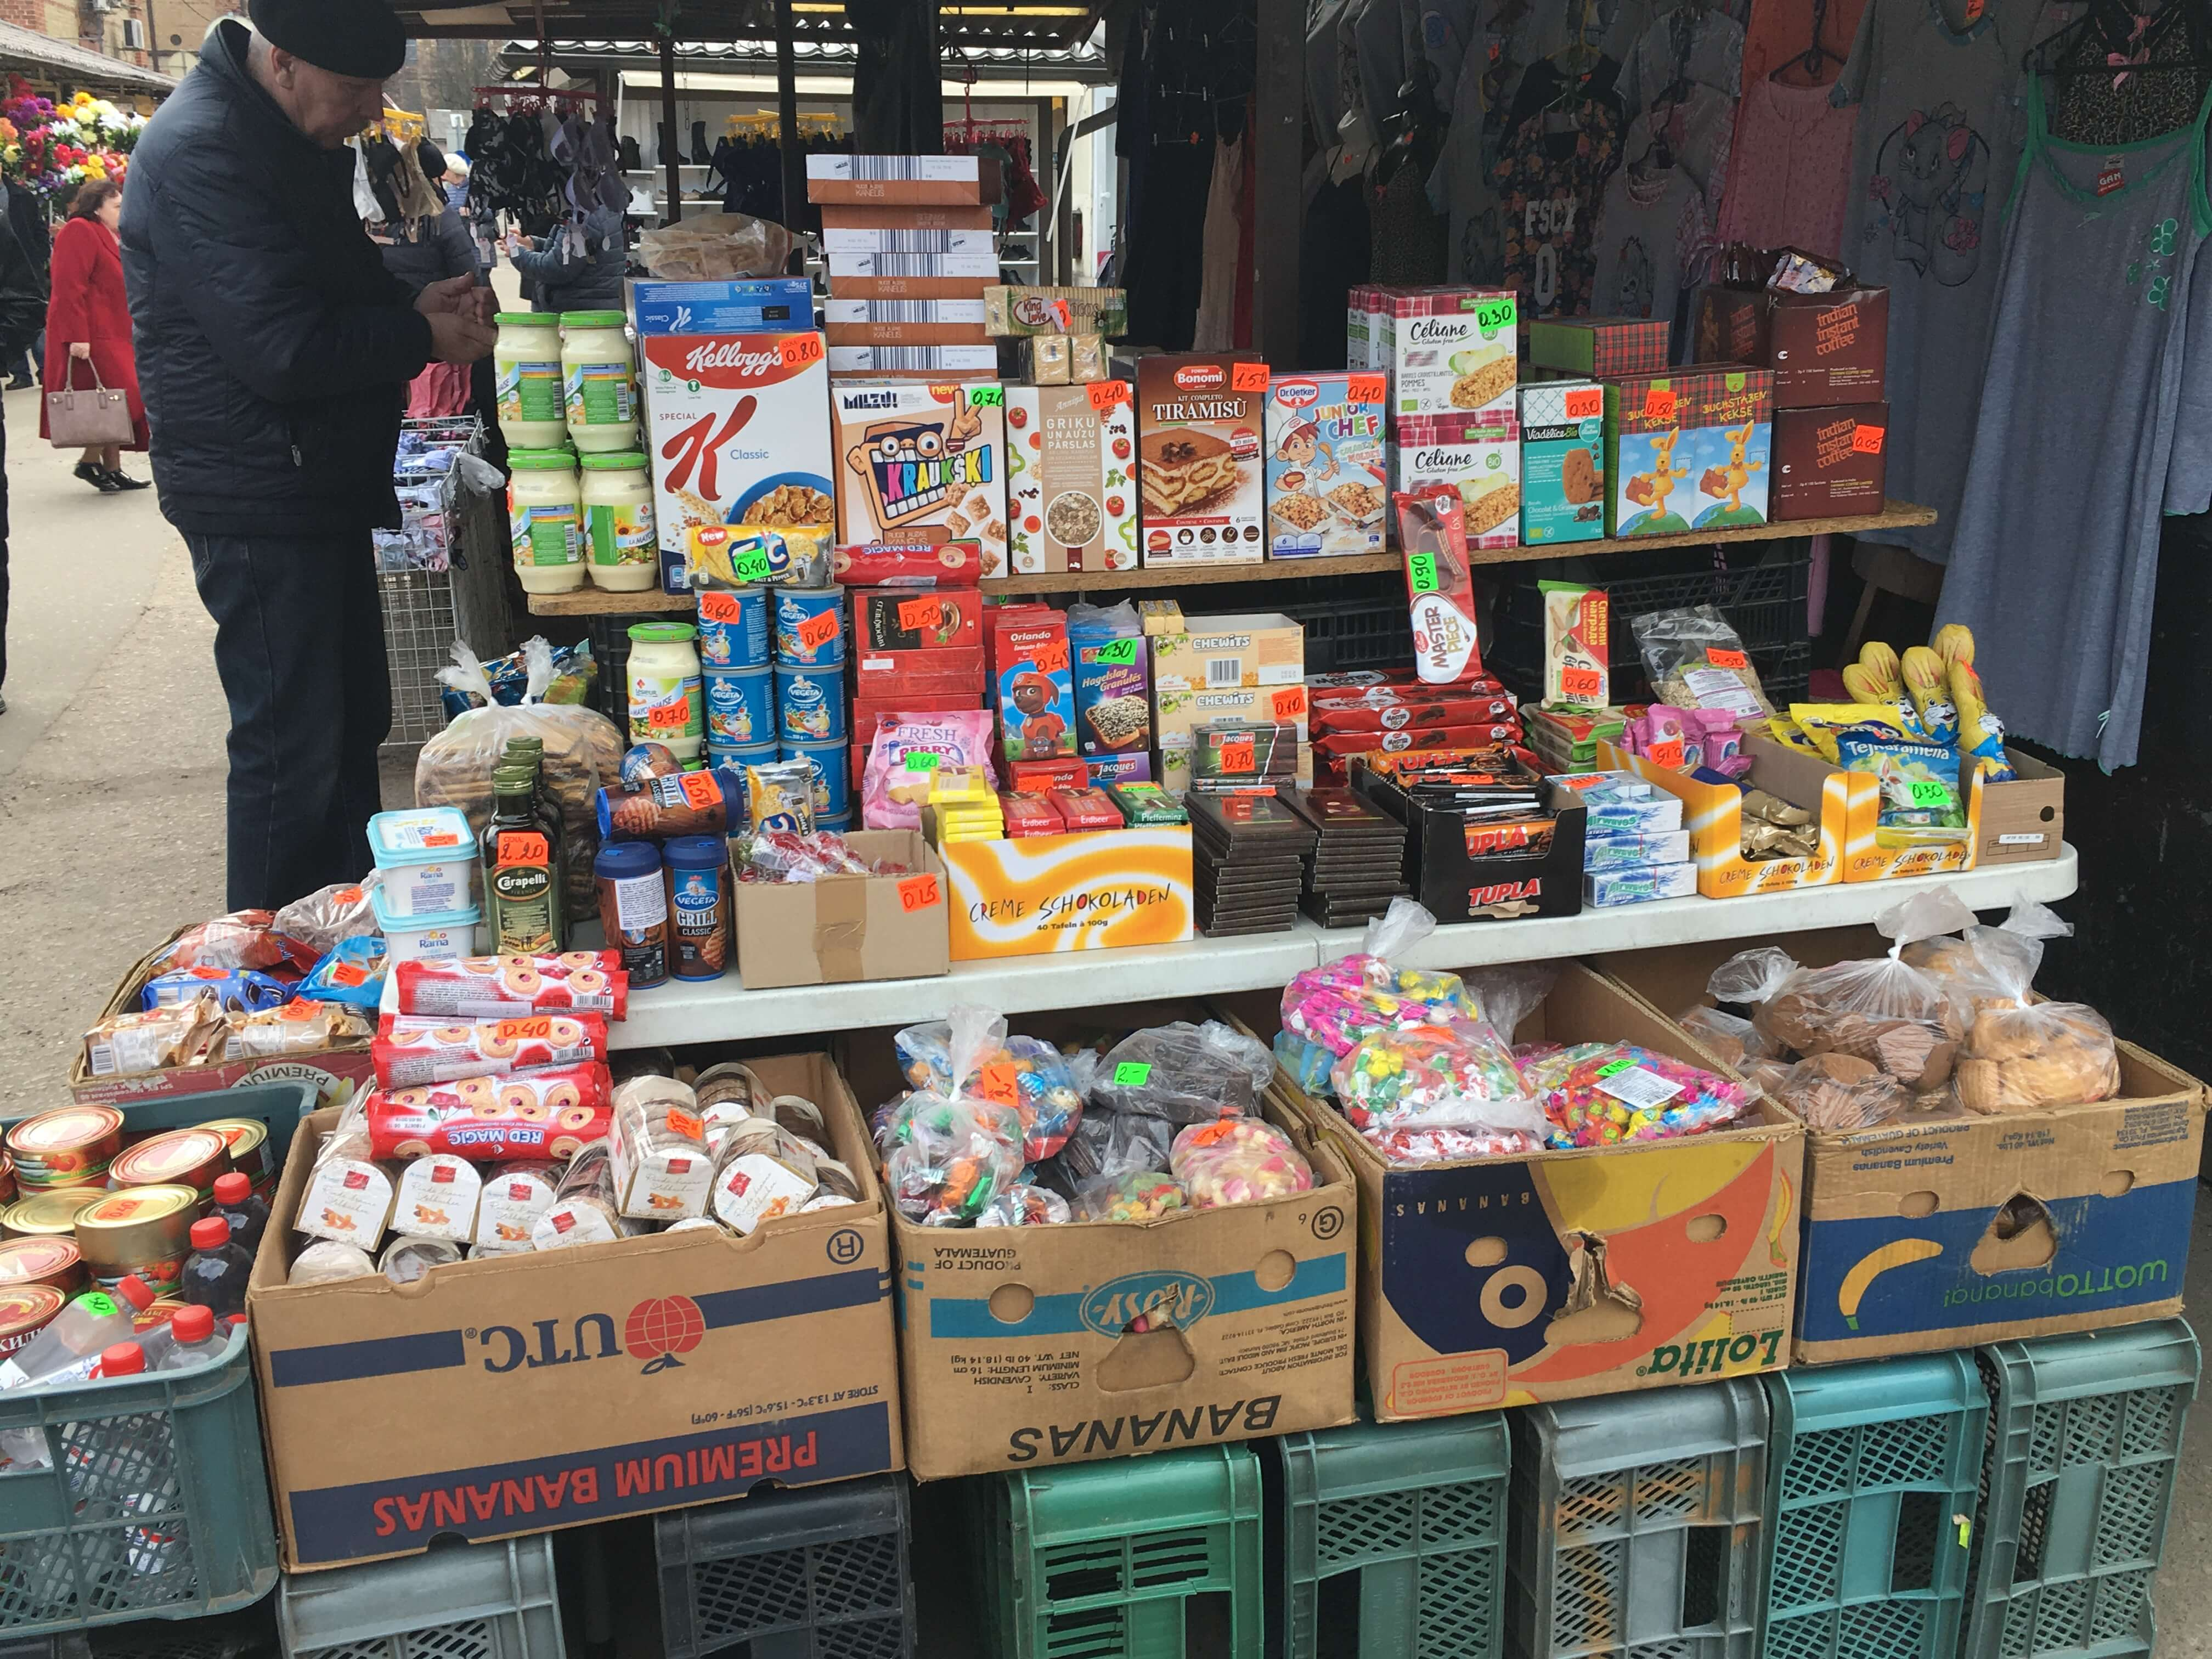 Over $100 Million in Illicit Food Seized in International Operation